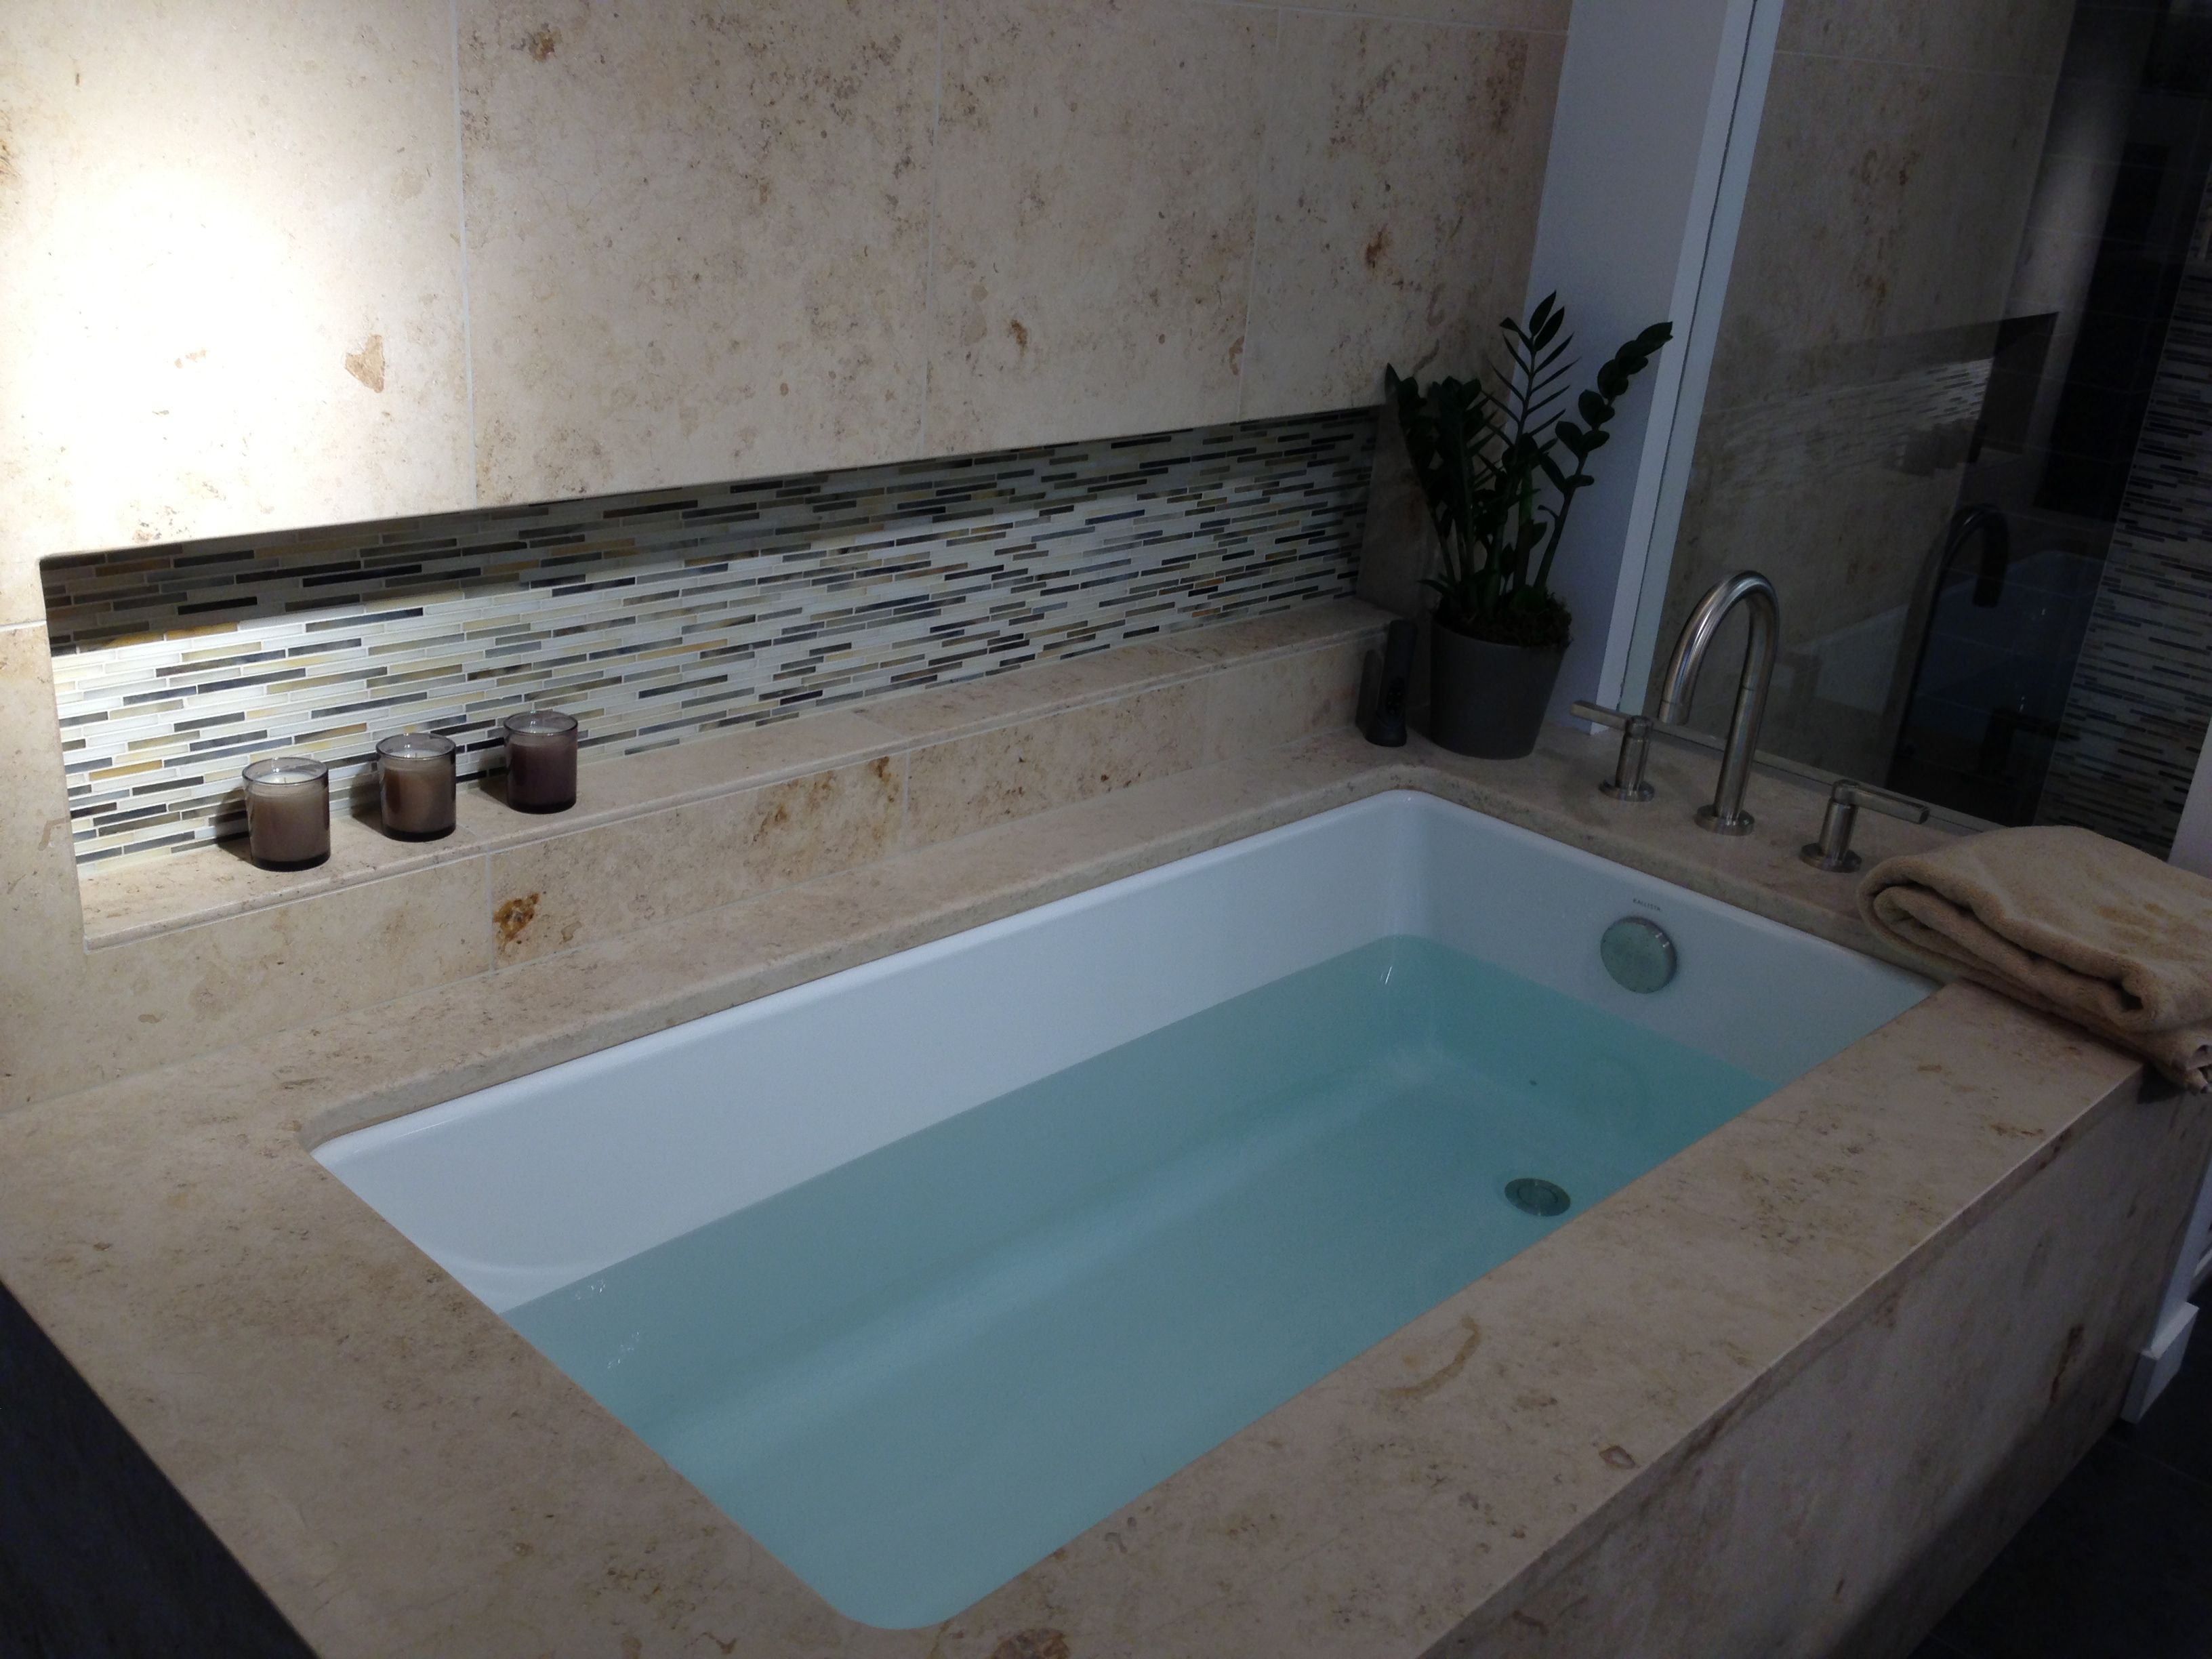 Undermount soaking tub with alcove shelf in contrasting tile ...